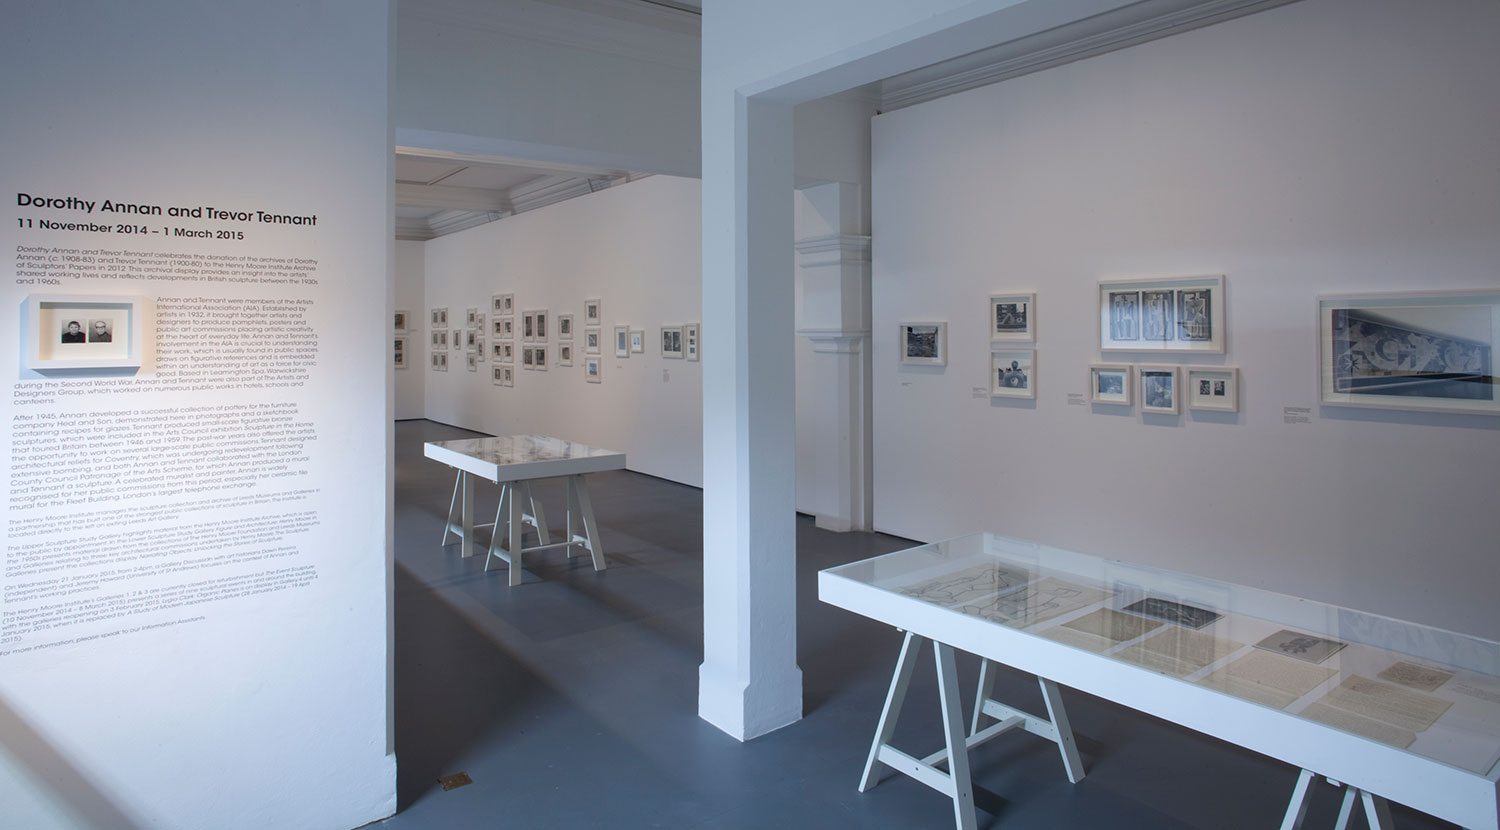 Installation view of Dorothy Annan and Trevor Tennant 4